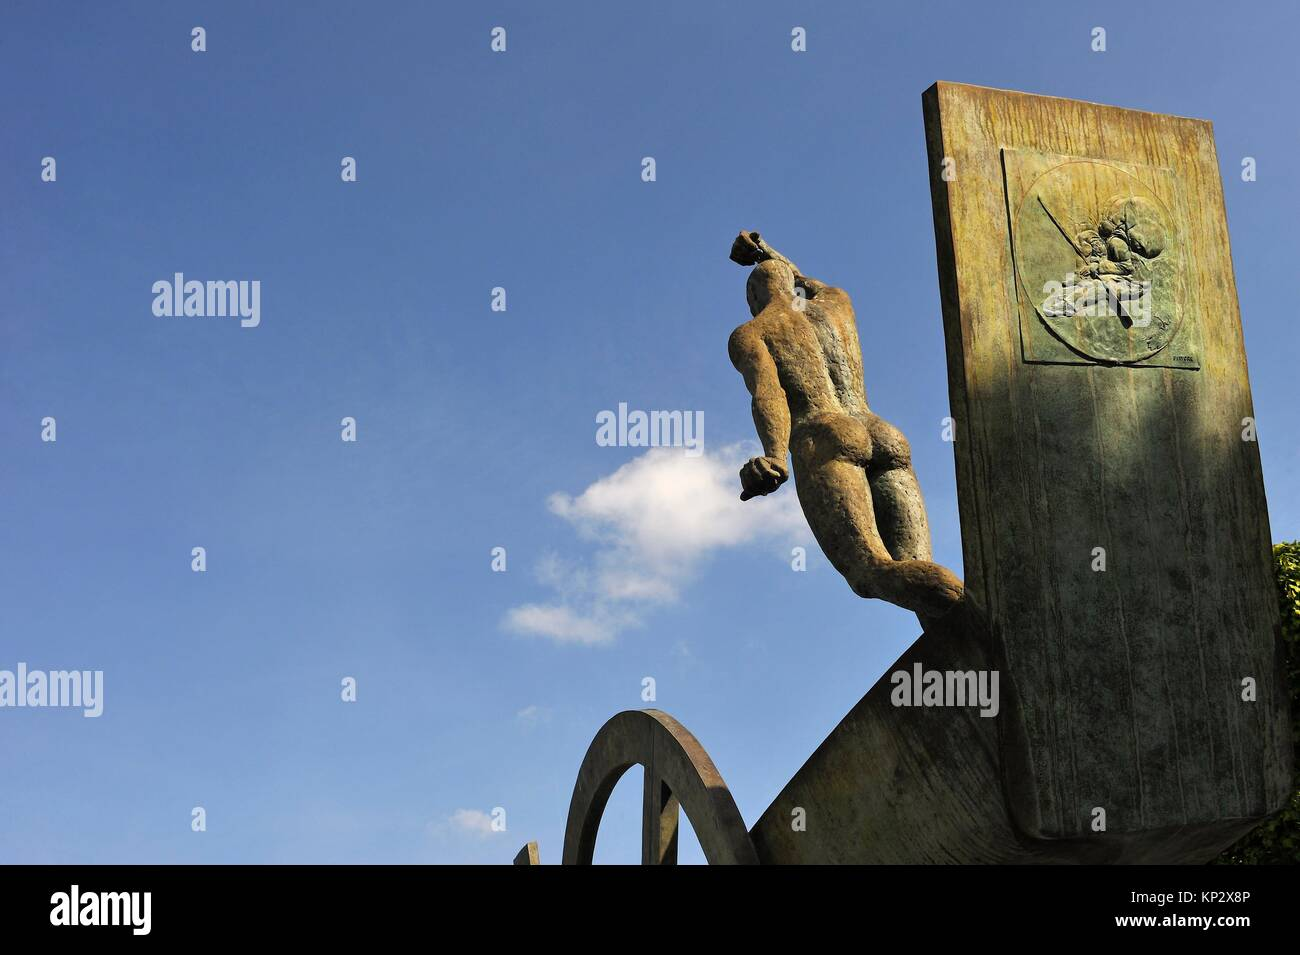 ´Barque Solaire´ work by the Franco-Czech sculptor Karel Zlin in the garden of the Chateau de Rambouillet, - Stock Image